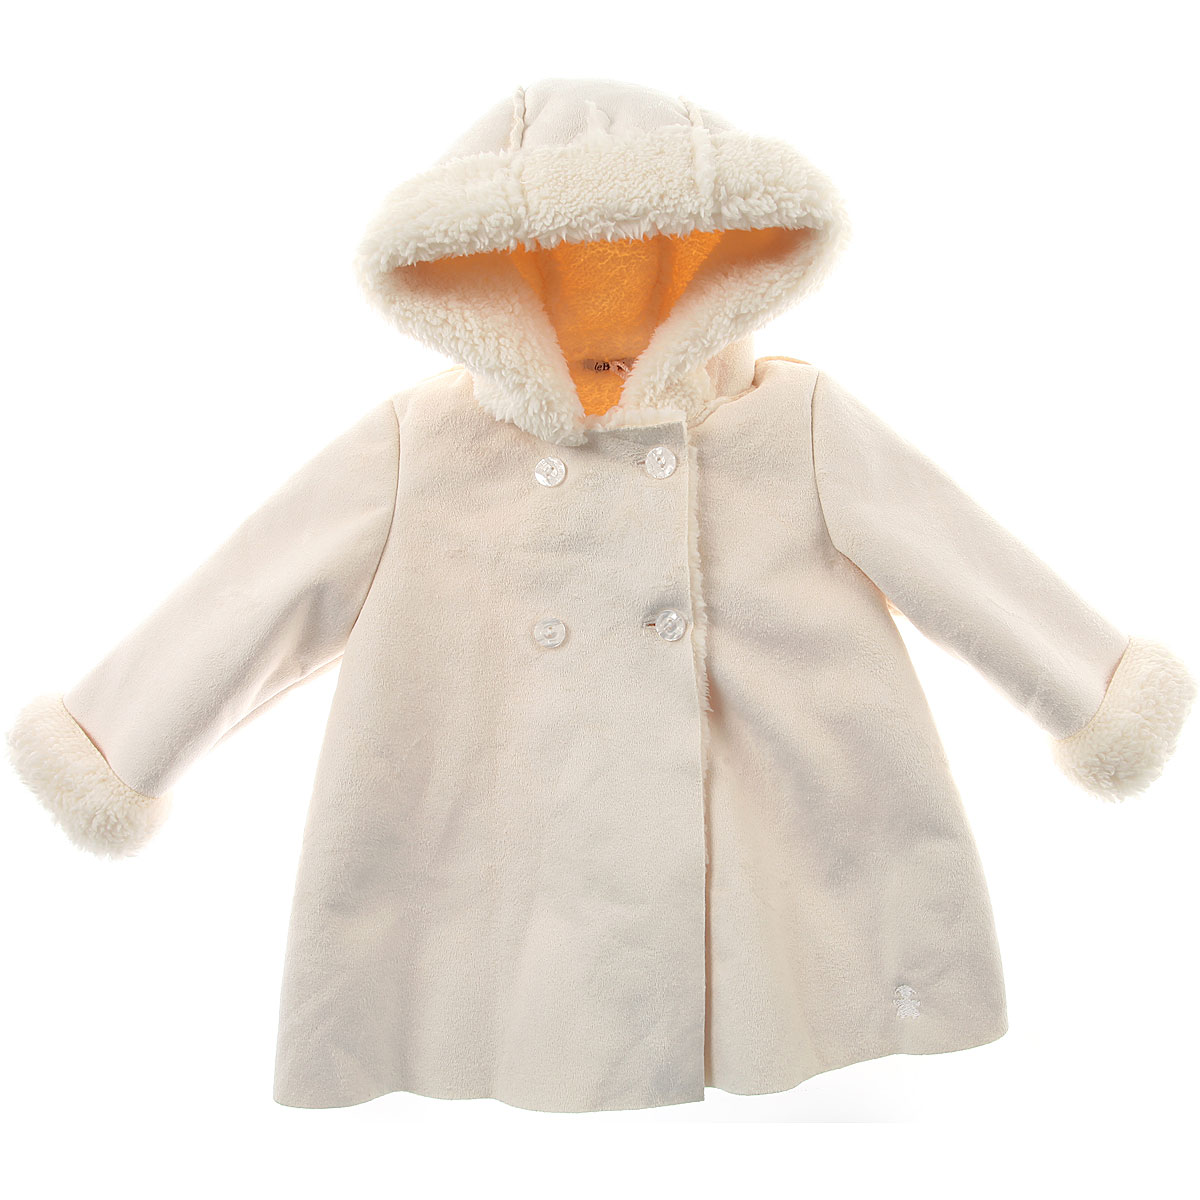 Image of Le Bebe Baby Coats for Girls, Cream, polyester, 2017, 12M 18M 9M